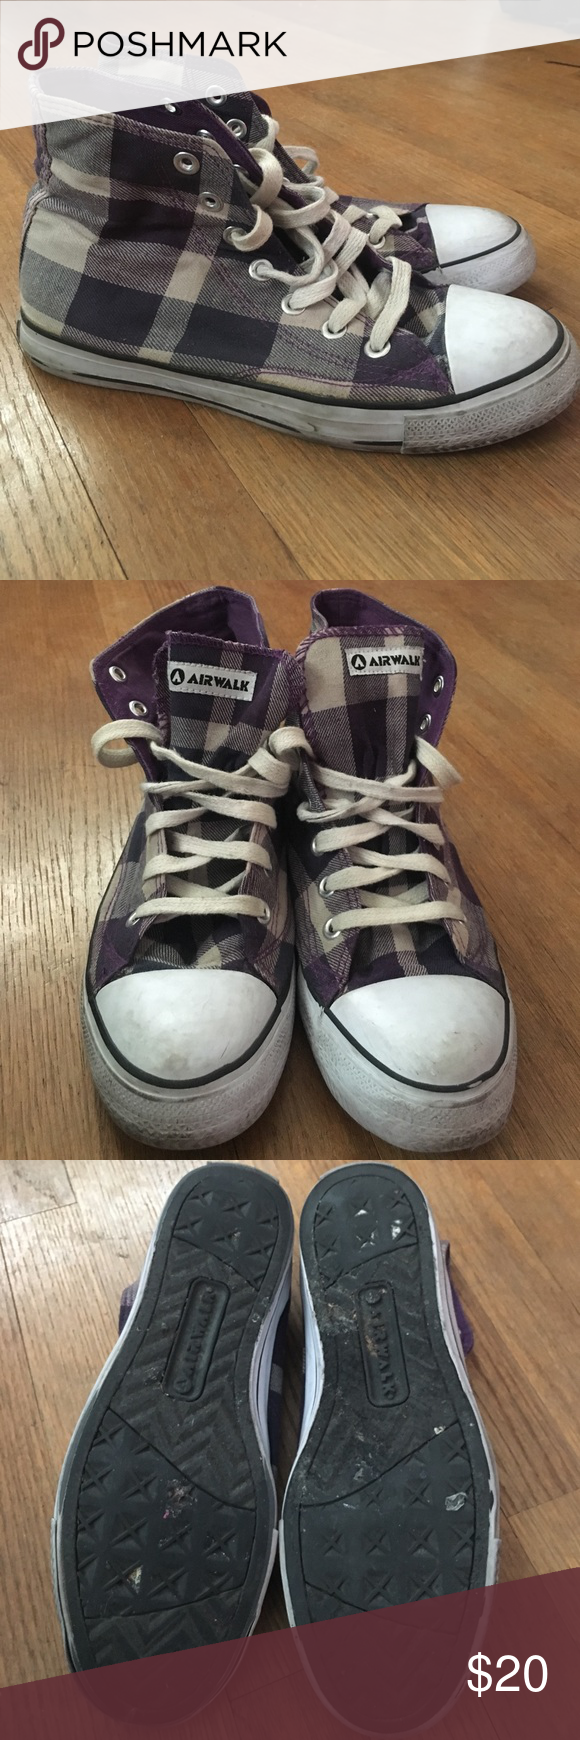 Blue and purple high top sneakers! Size 8 Blue and purple high tops. Bought  in New York. Worn very little and in good condition. Airwalk Shoes Sneakers 84a816dbea16